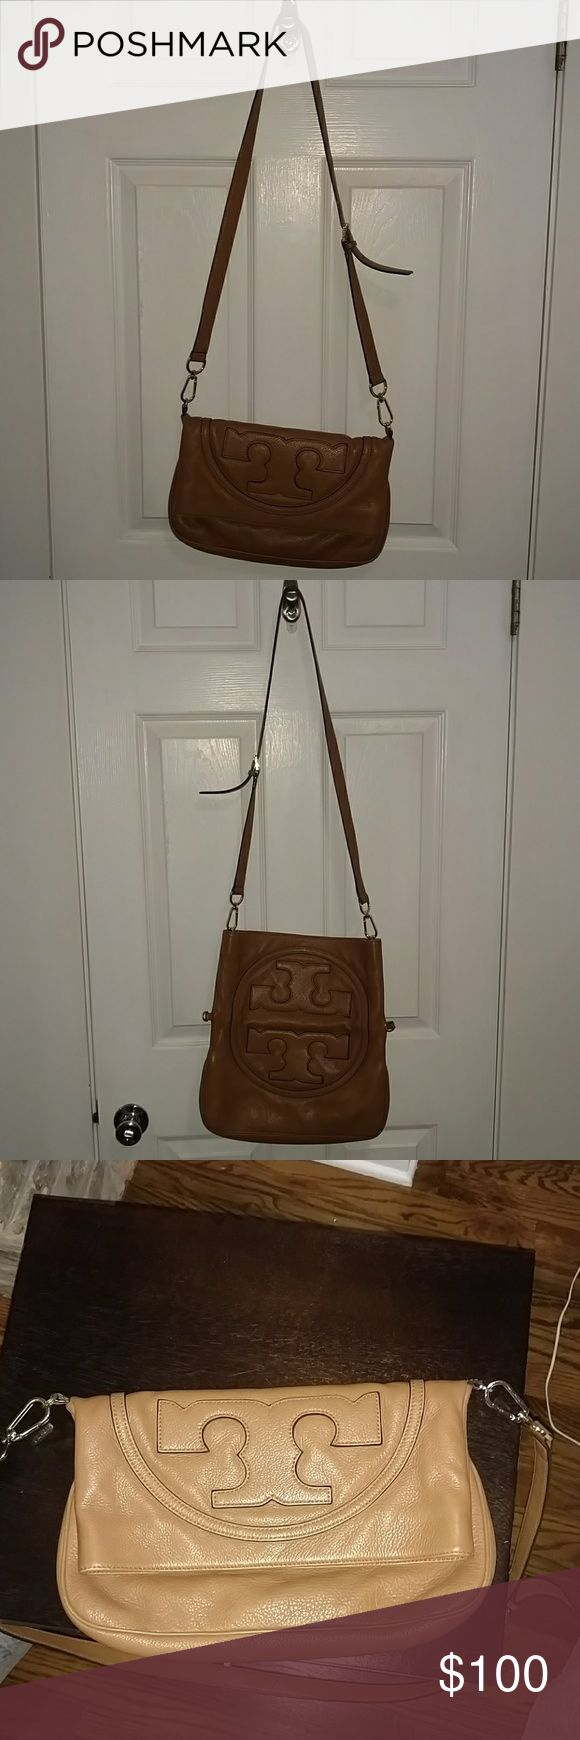 Tory Burch convertible fold-over cross body purse Gently used, saddle brown rich peddle leather convertible fold-over cross body purse with Tory Burch dust bag. Purse can be worn three ways - over the shoulder, cross body and as a clutch when strap is removed.  Strap can be worn two ways - at center of bag for folded over (more secure look) or at opening to provide easier access to contents of bag and to carry more.  Great for summer errands, festivals and casual date nights. Tory Burch Bags…